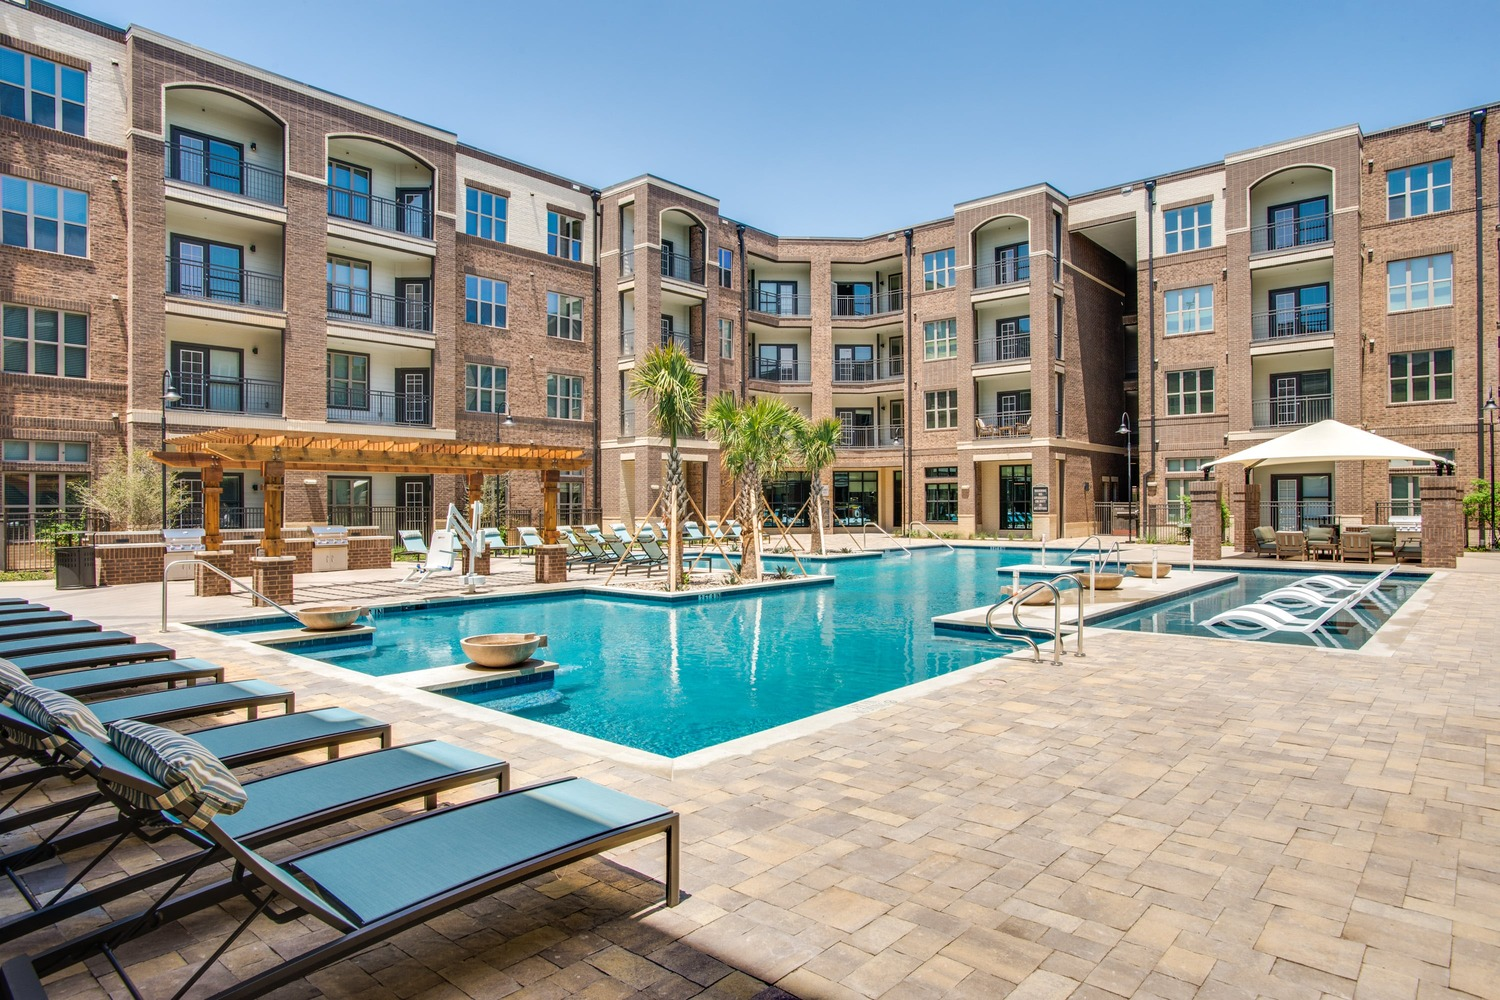 CBG builds Emerson Court, a 312-Unit Luxury Apartment Community with Amenities in Frisco, TX